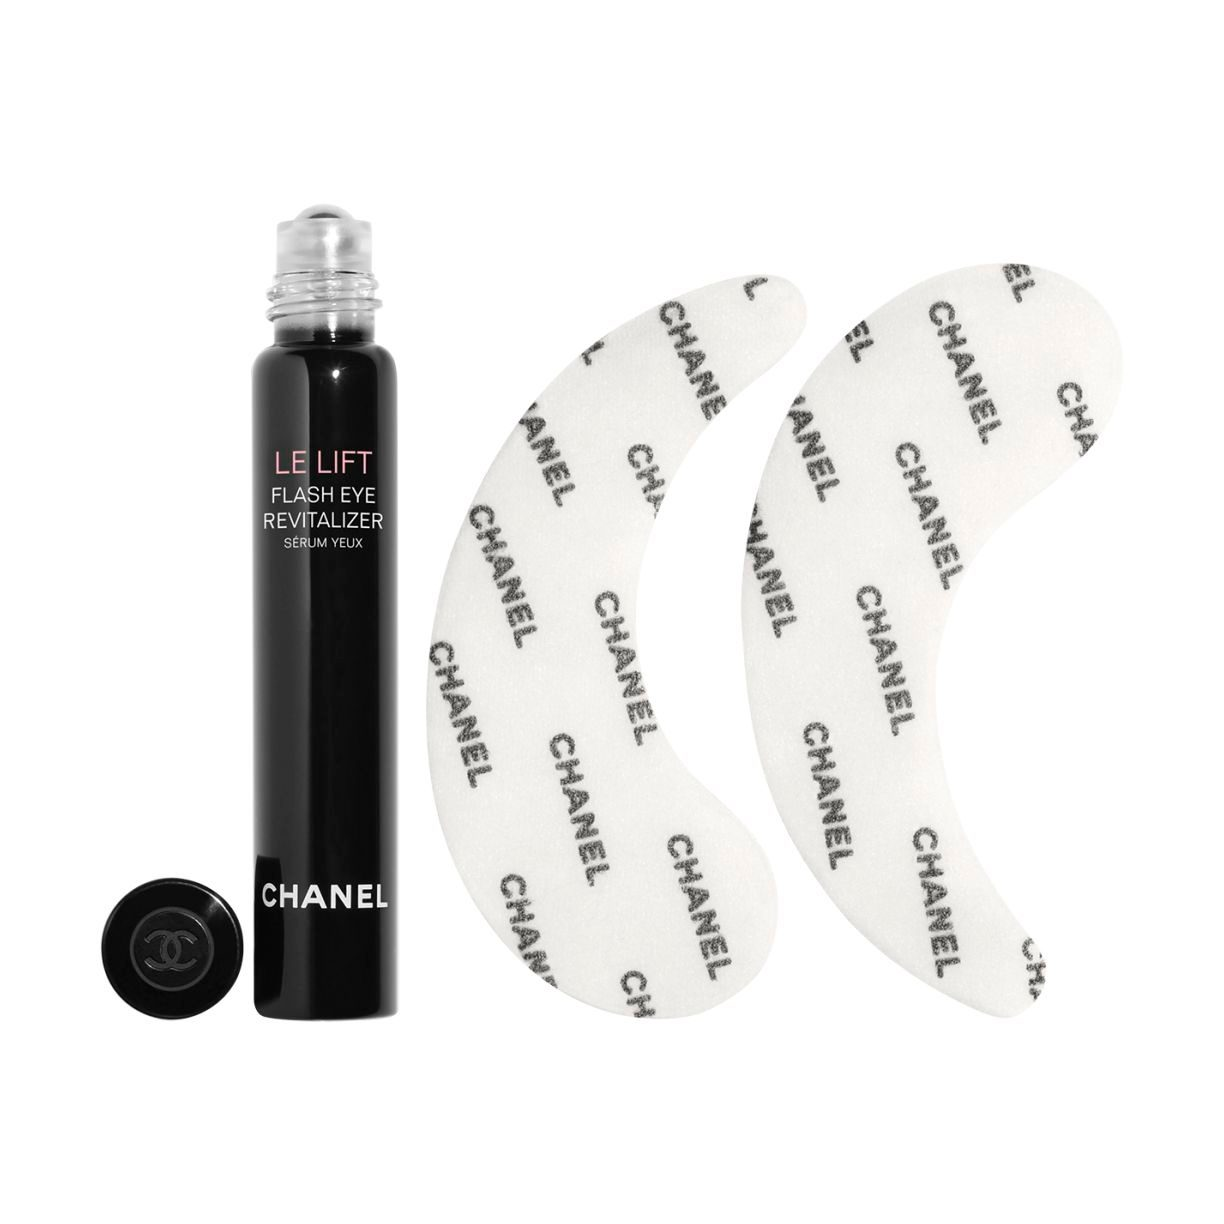 LE LIFT ANTI-RIMPEL-STEVIGHEID FLASH EYE REVITALIZER